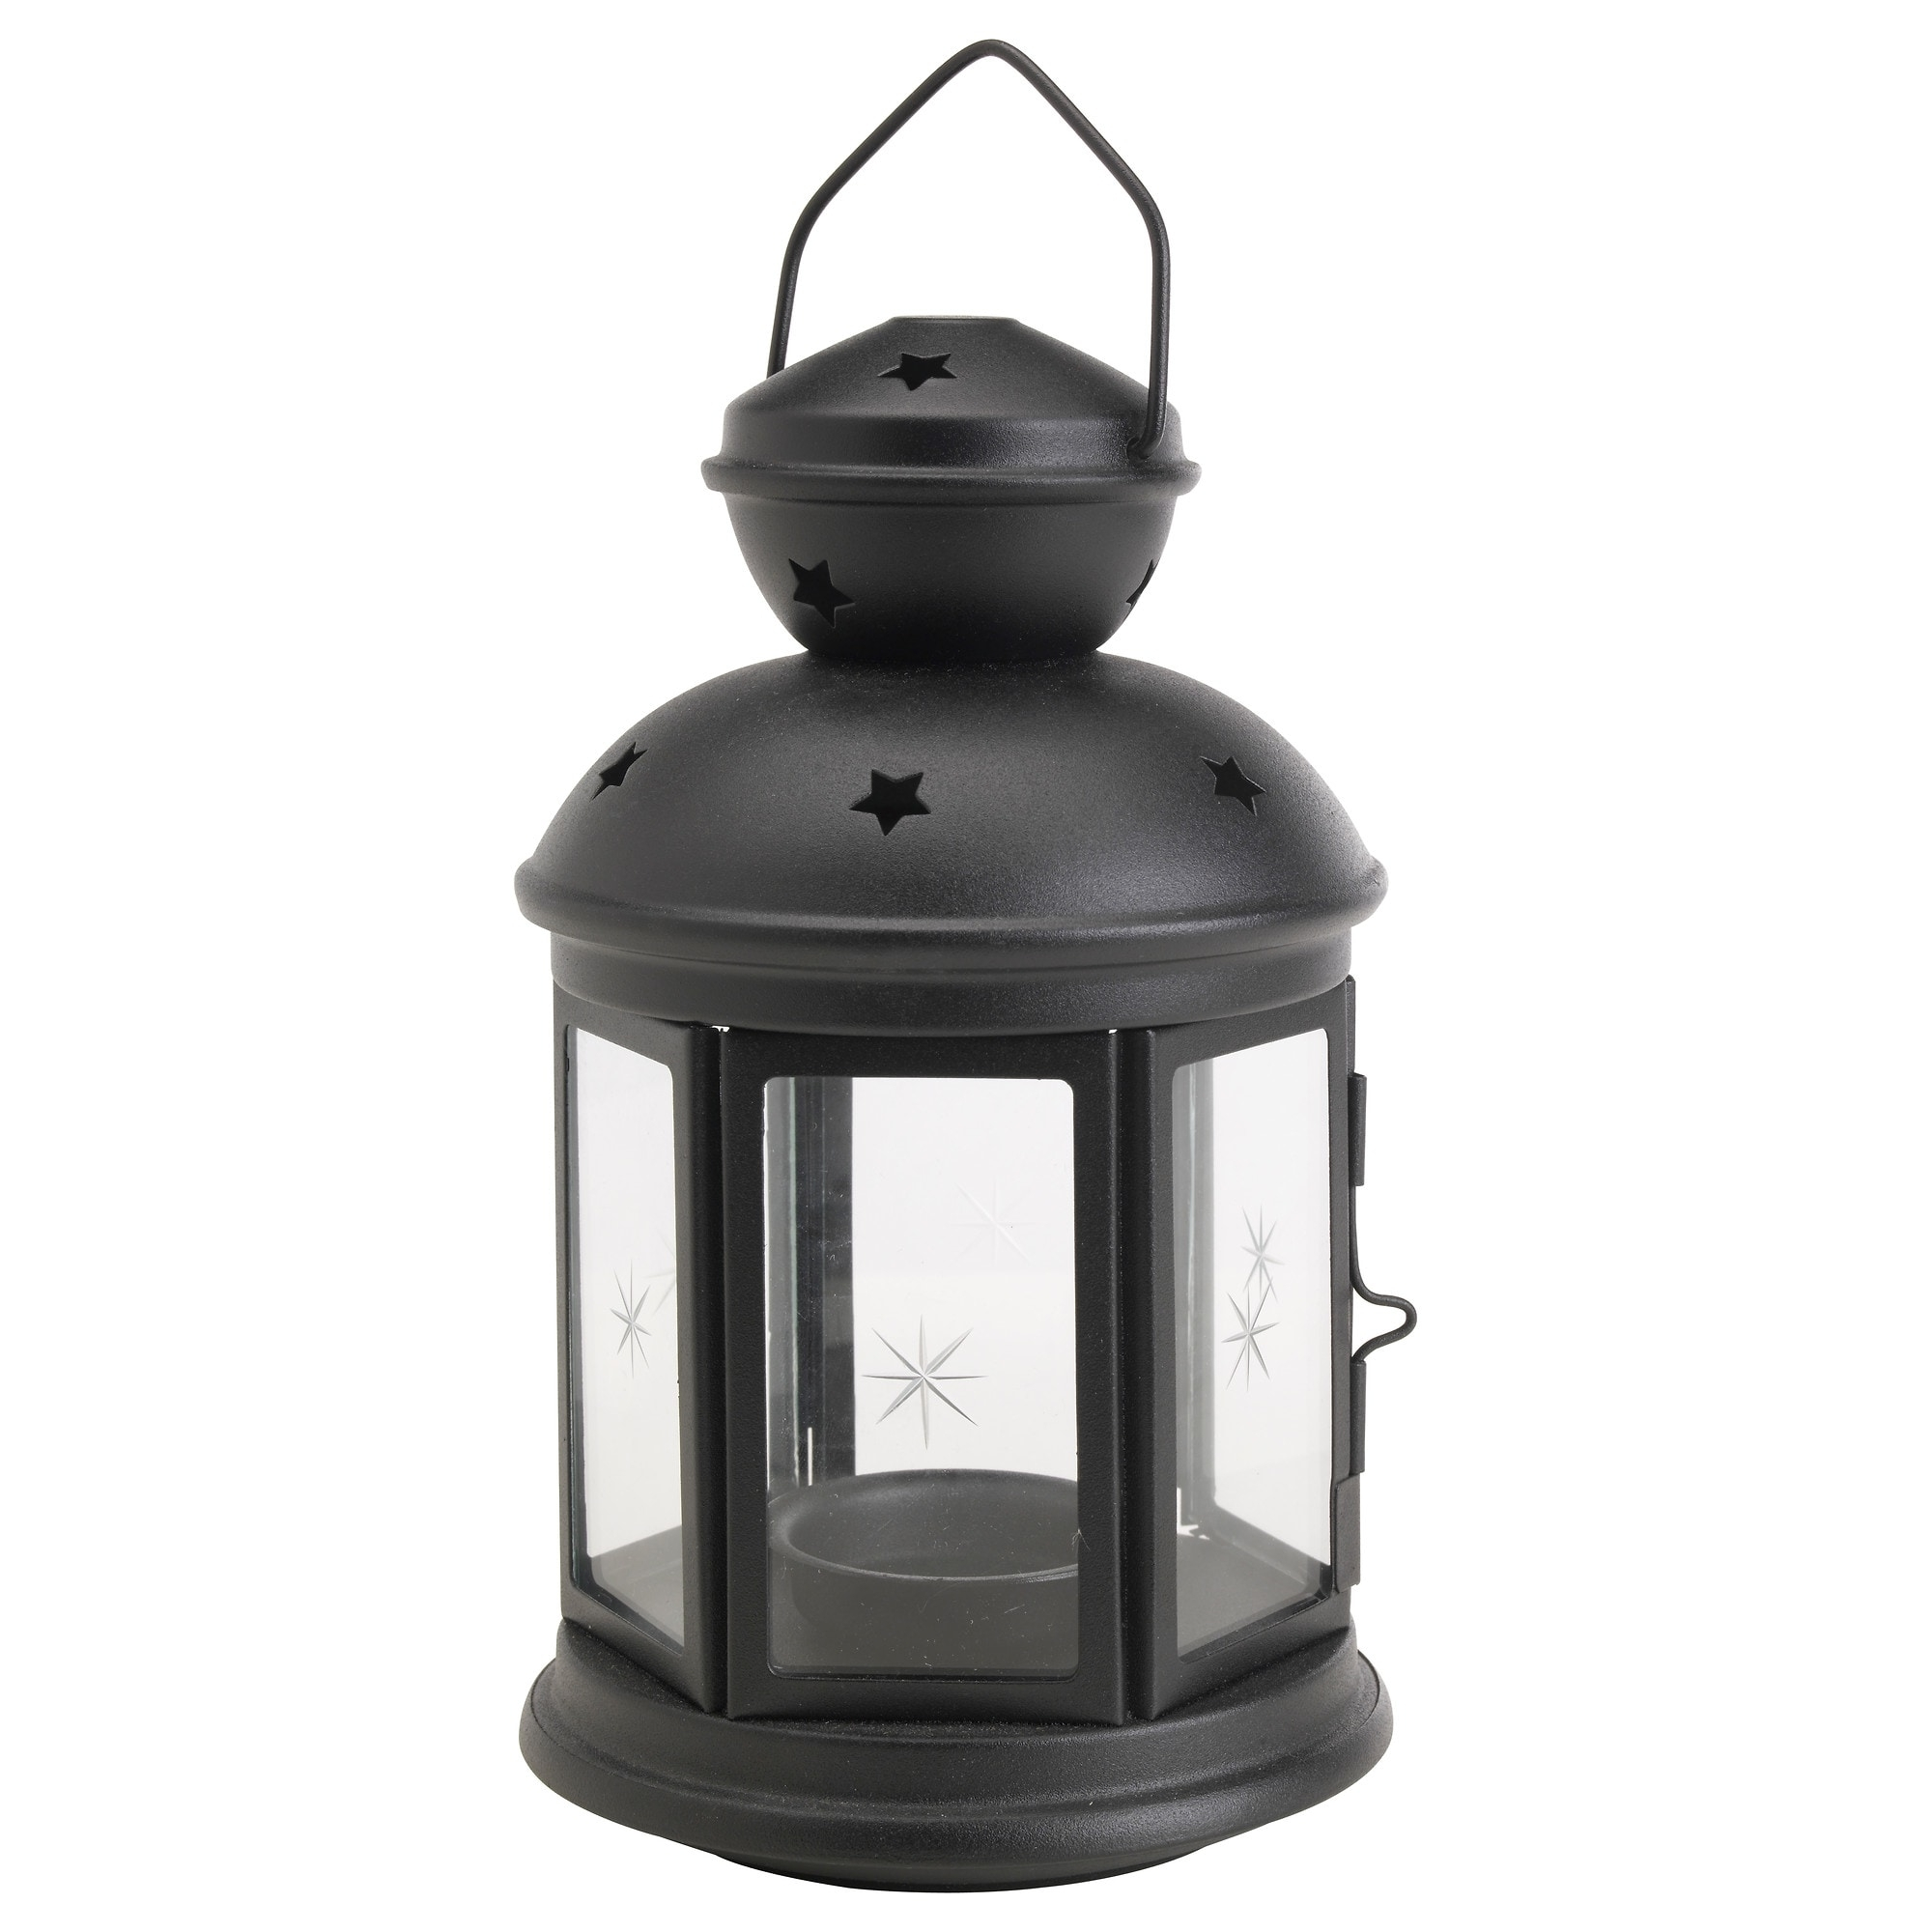 Rotera Lantern For Tealight In/outdoor Black 21 Cm – Ikea Throughout Most Up To Date Outdoor Orange Lanterns (Gallery 11 of 20)